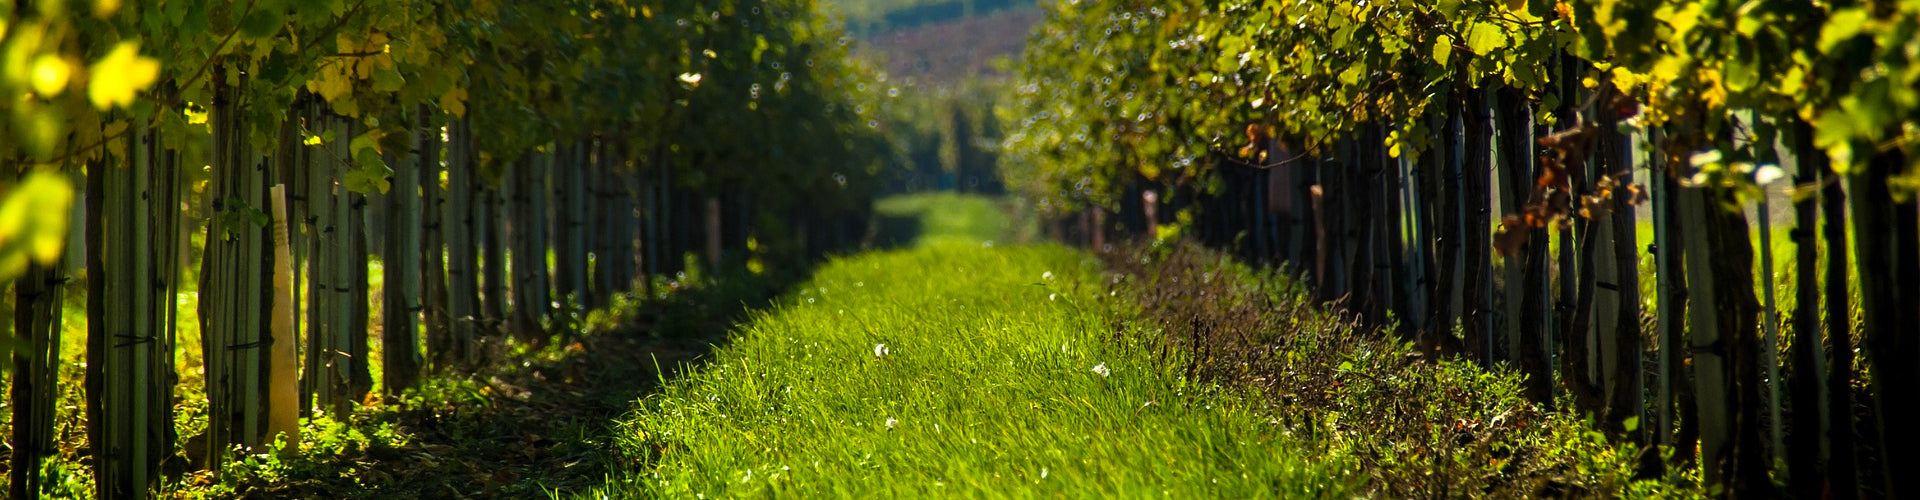 Organic Vineyard with Vines and Crop Cover